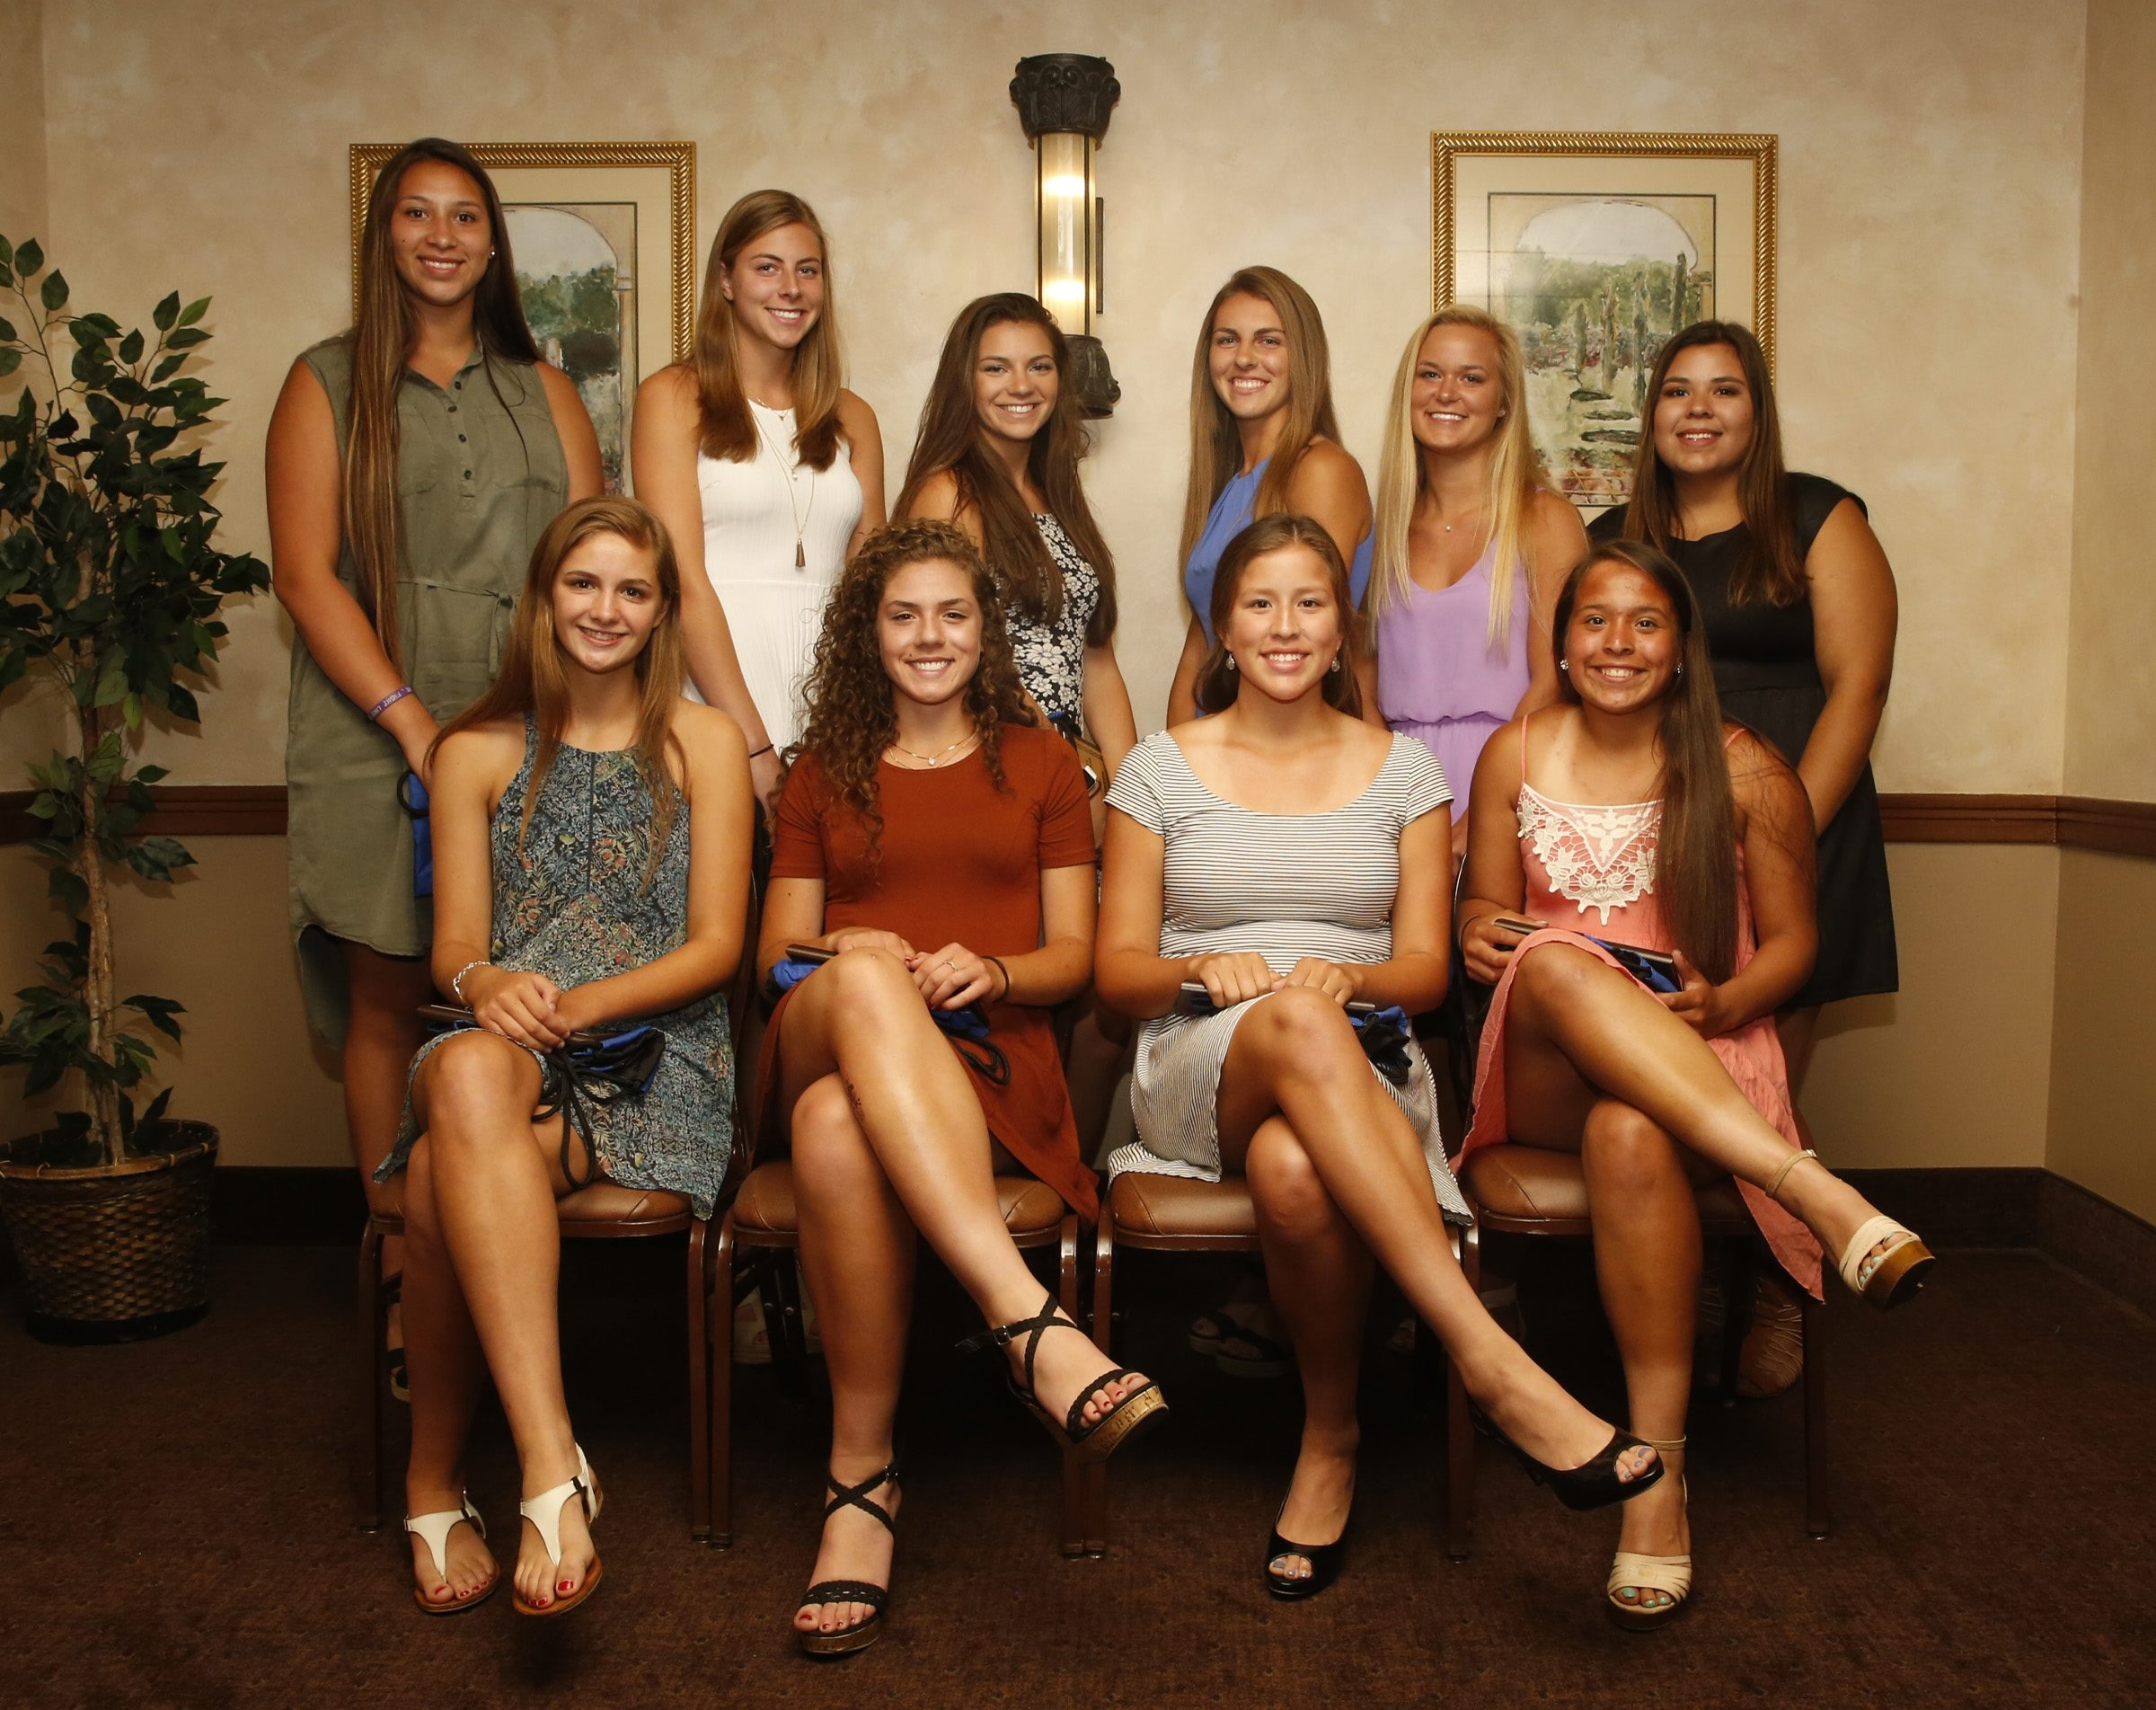 2016 All-Western New York girls lacrosse team, pictured at the Borrelli Awards banquet: Front row, Claire Herrmann, Hamburg, Laura Skrzypczyk, West Seneca East, Jalyn Jimerson, Lake Shore, Ive Santana, Lake Shore; back row, Shayla Scanlan, Lake Shore, Sydney Cerza, Clarence, Anna Orlando, Lancaster, Riley Lucarelli, Lancaster, Grace Ruh, Orchard Park, and Jenna Haring, Lake Shore.